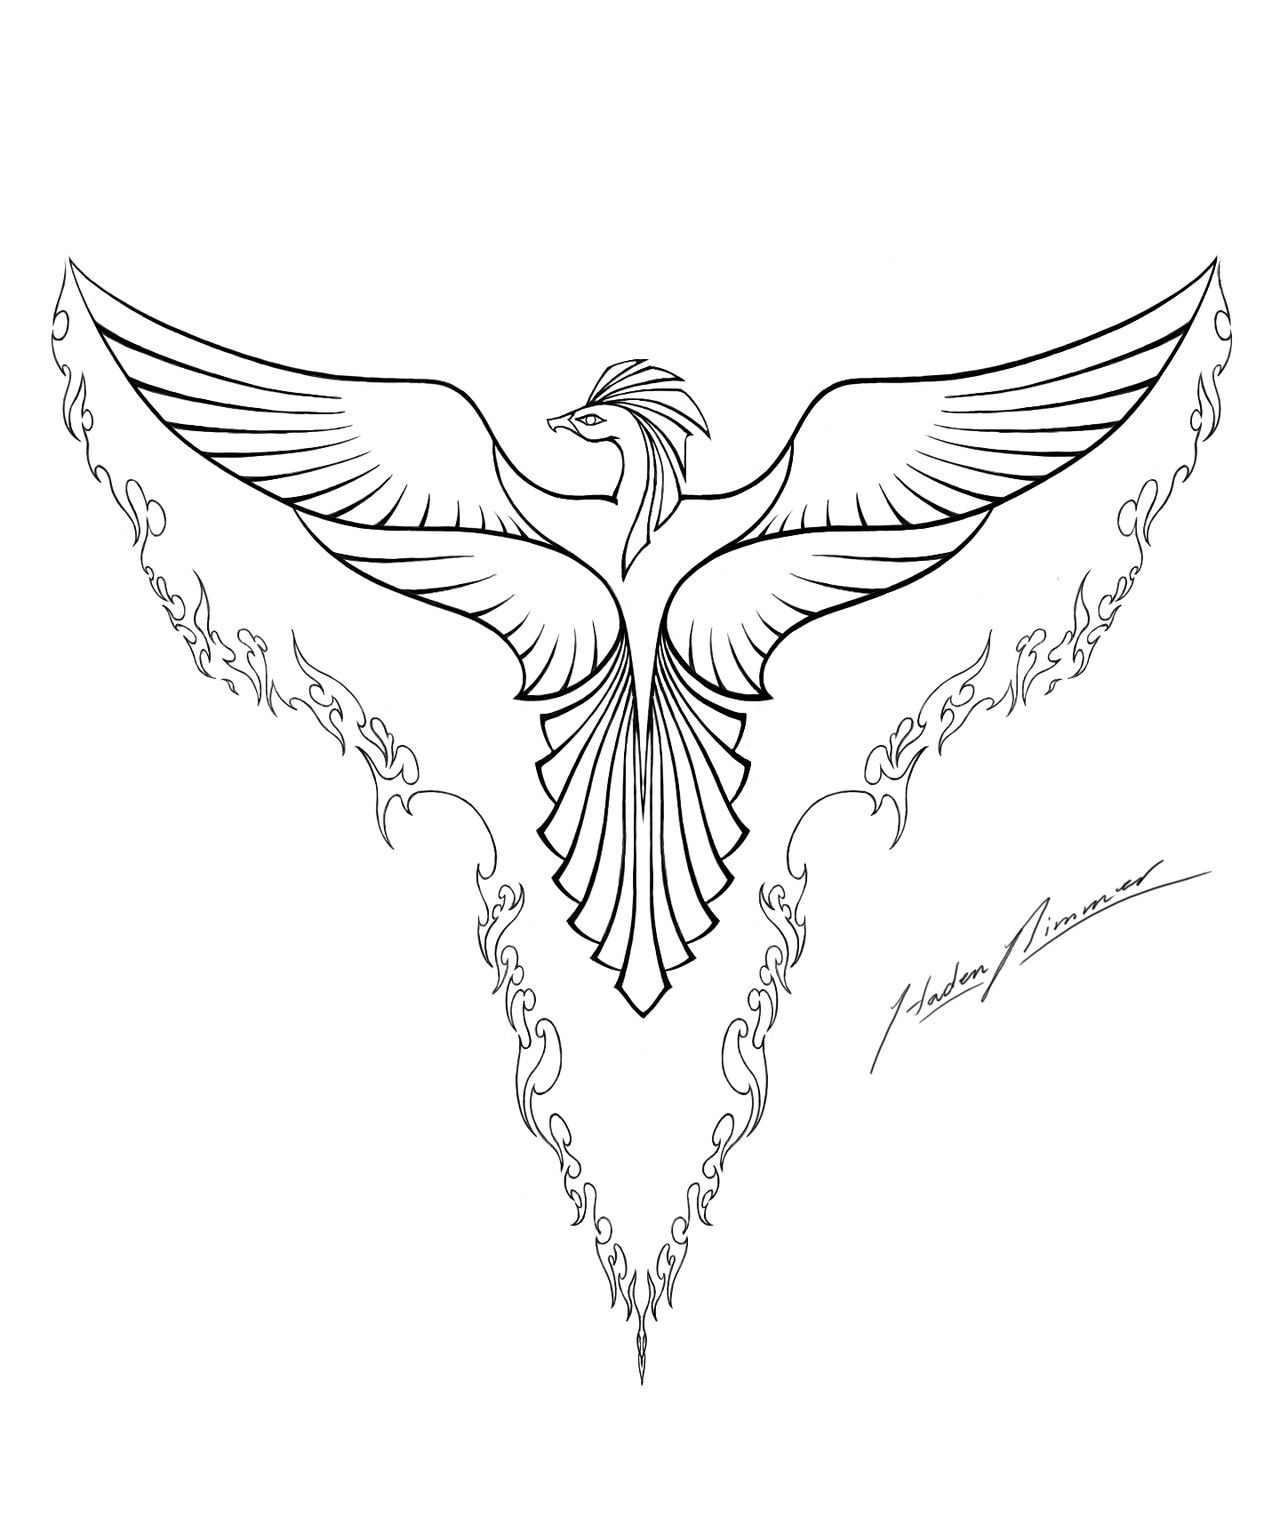 Phoenix Coloring Page Org In Pages Phoenix Tattoo Phoenix Tattoo Design Phoenix Bird Tattoos